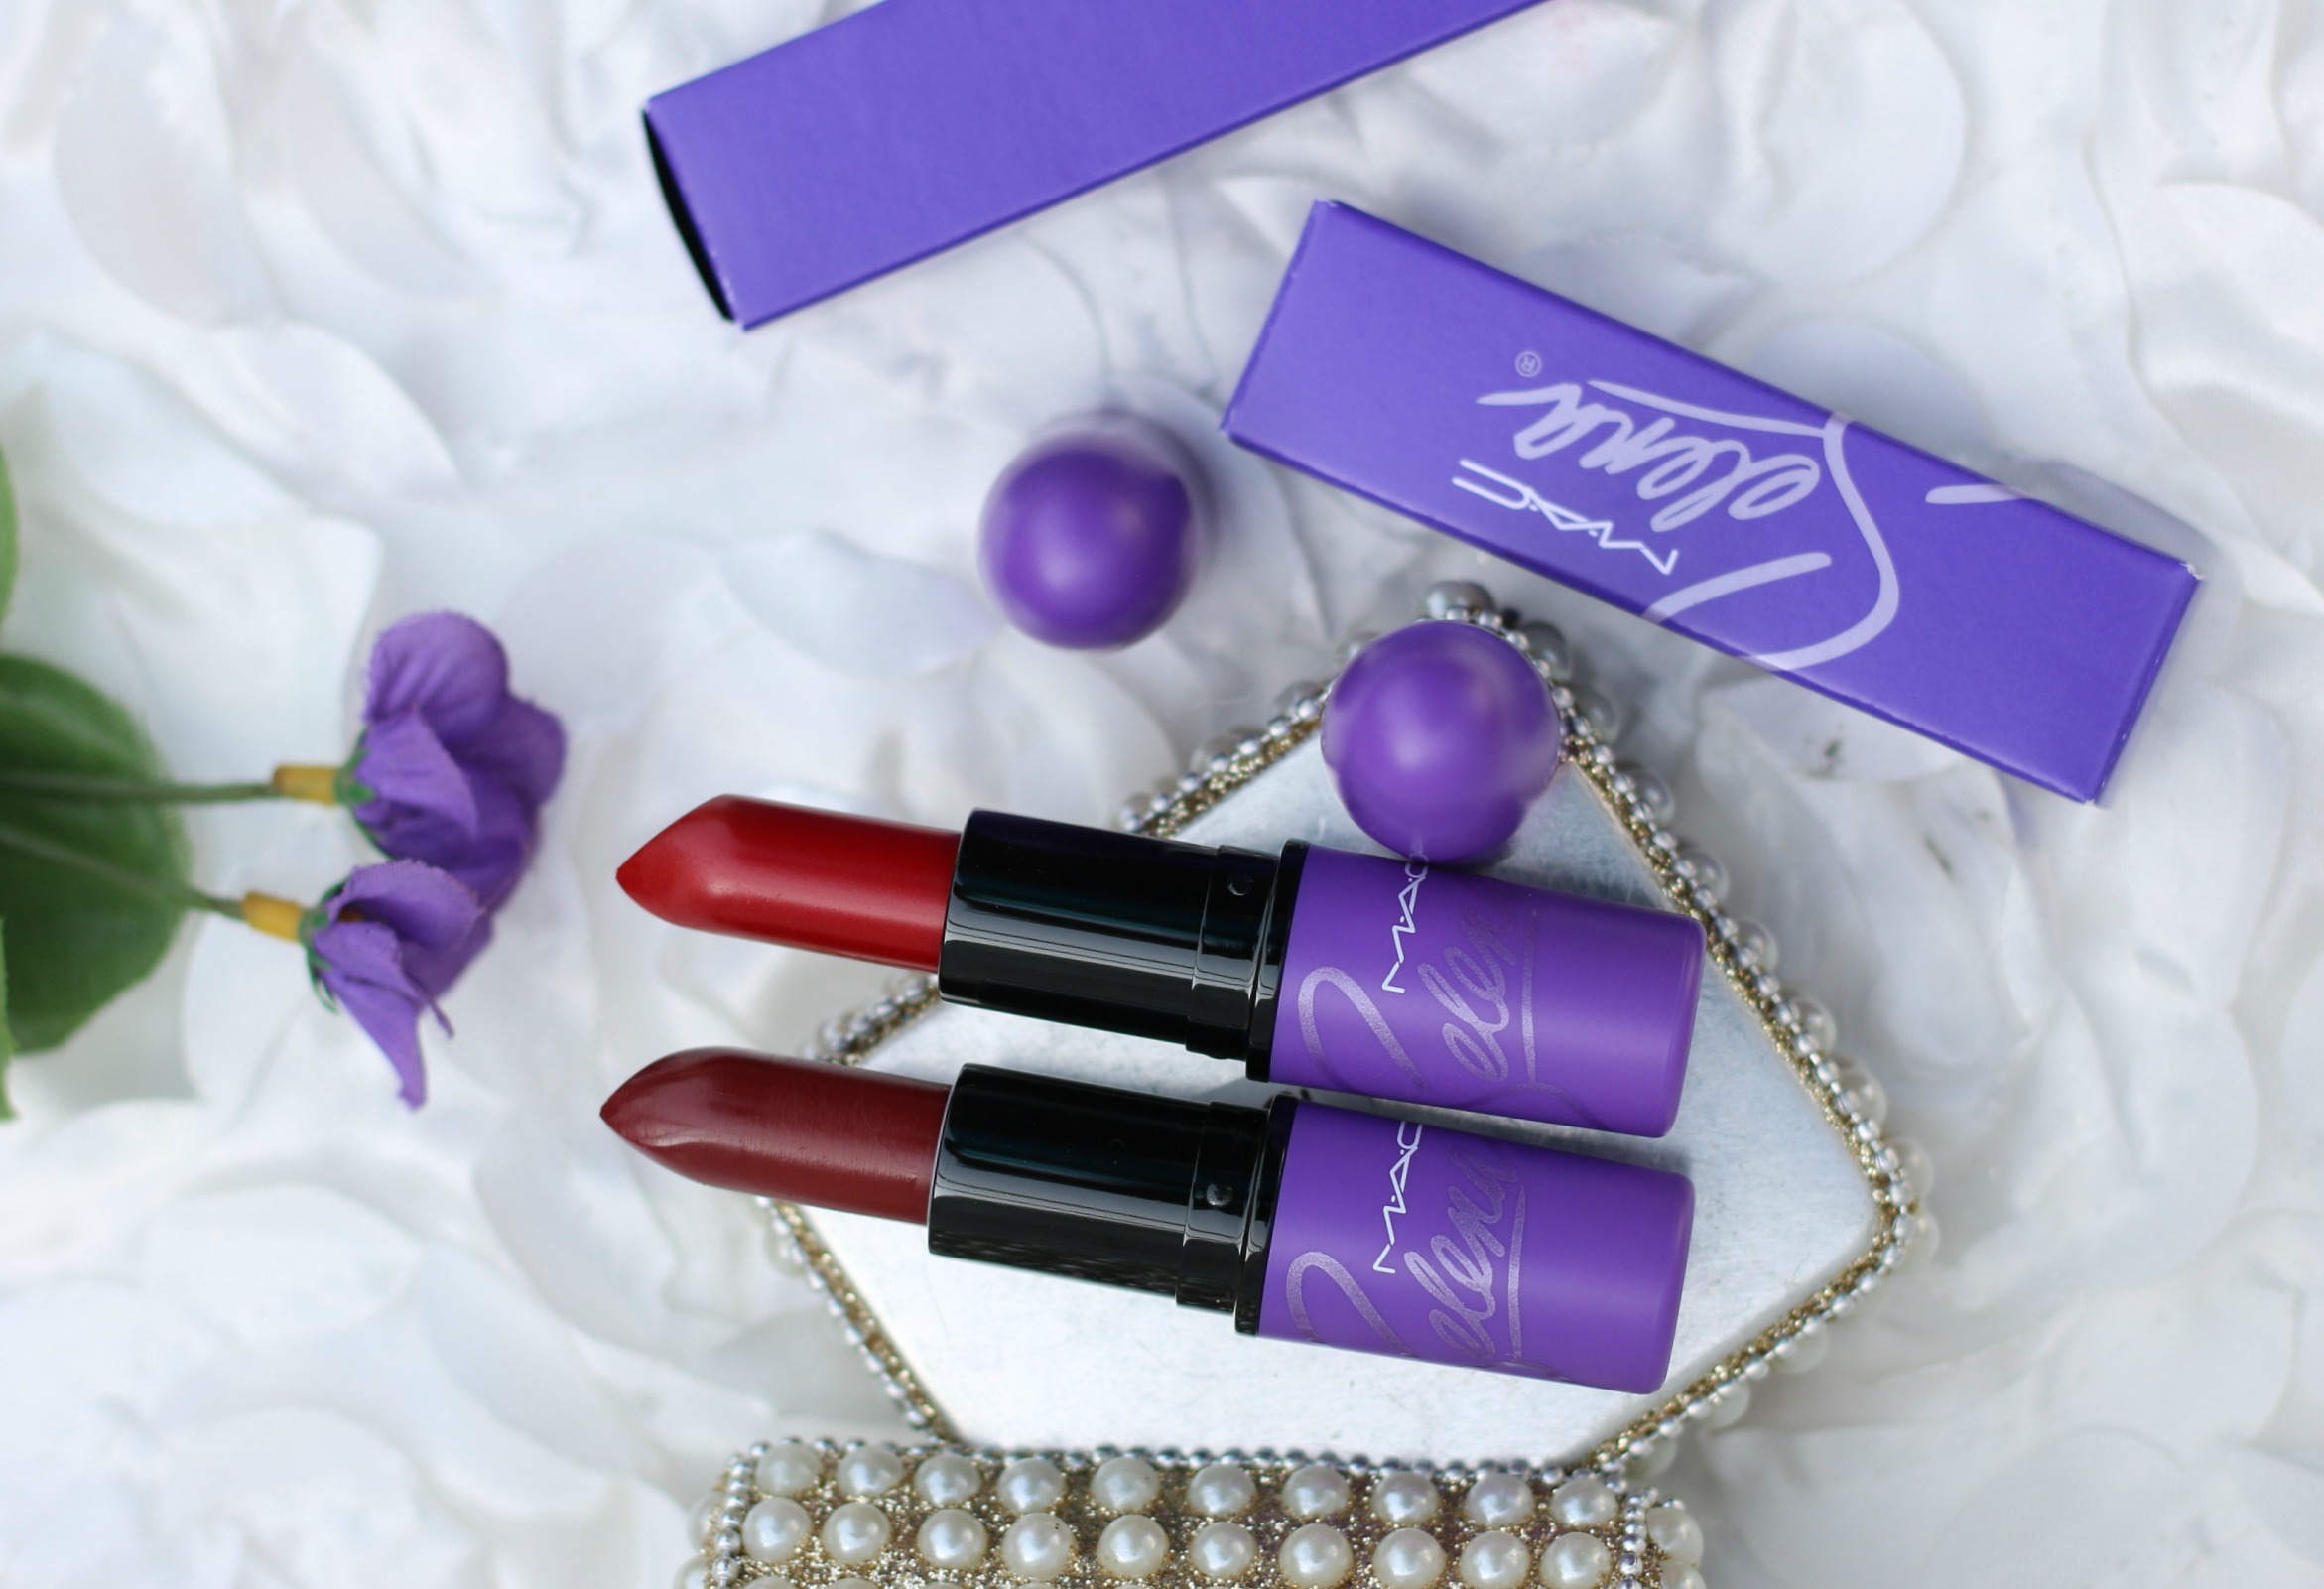 For Fall 2016, MAC launched this amazing color makeup collection inspired by Mexican-American singer Selena Quintanilla. MAC x Selena collection is a new ...